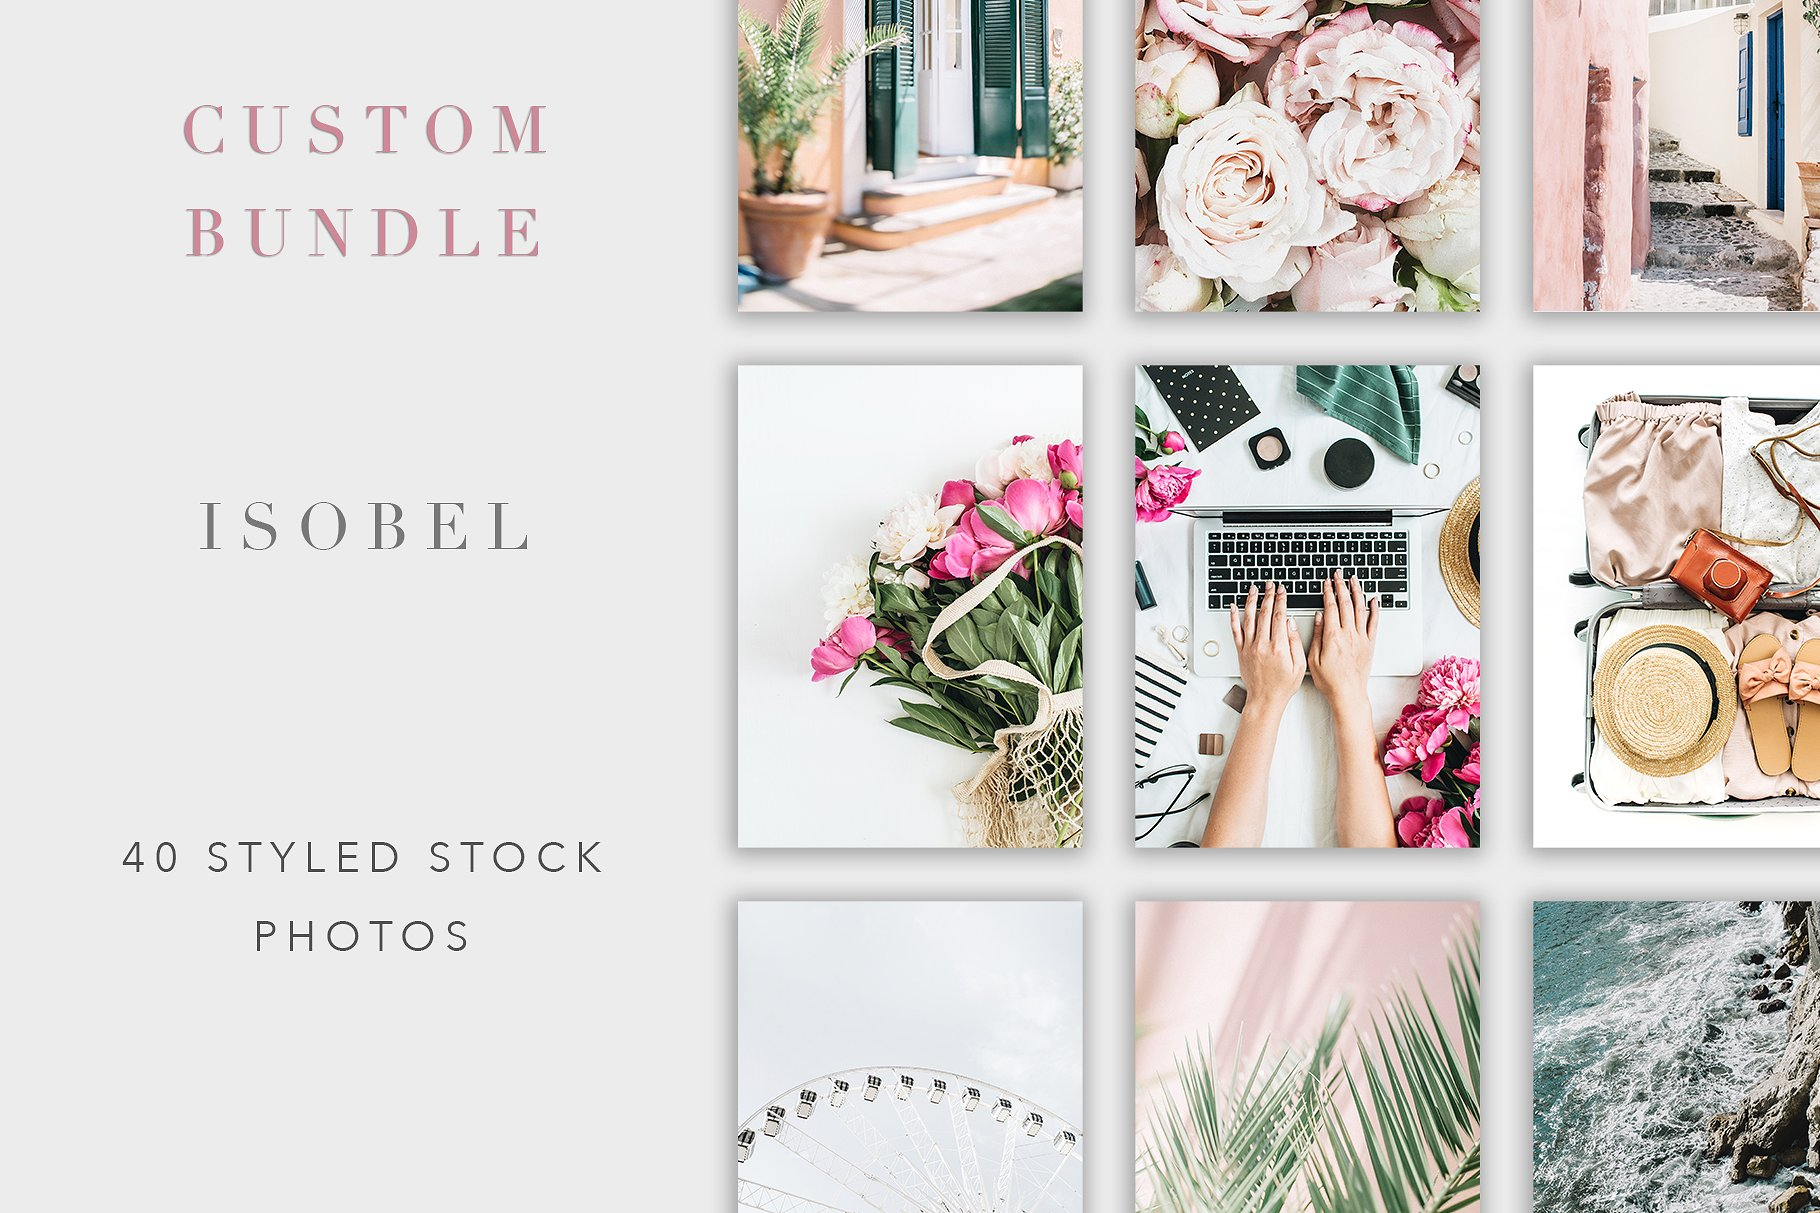 Custom Bundle | Isobel by Floral Deco